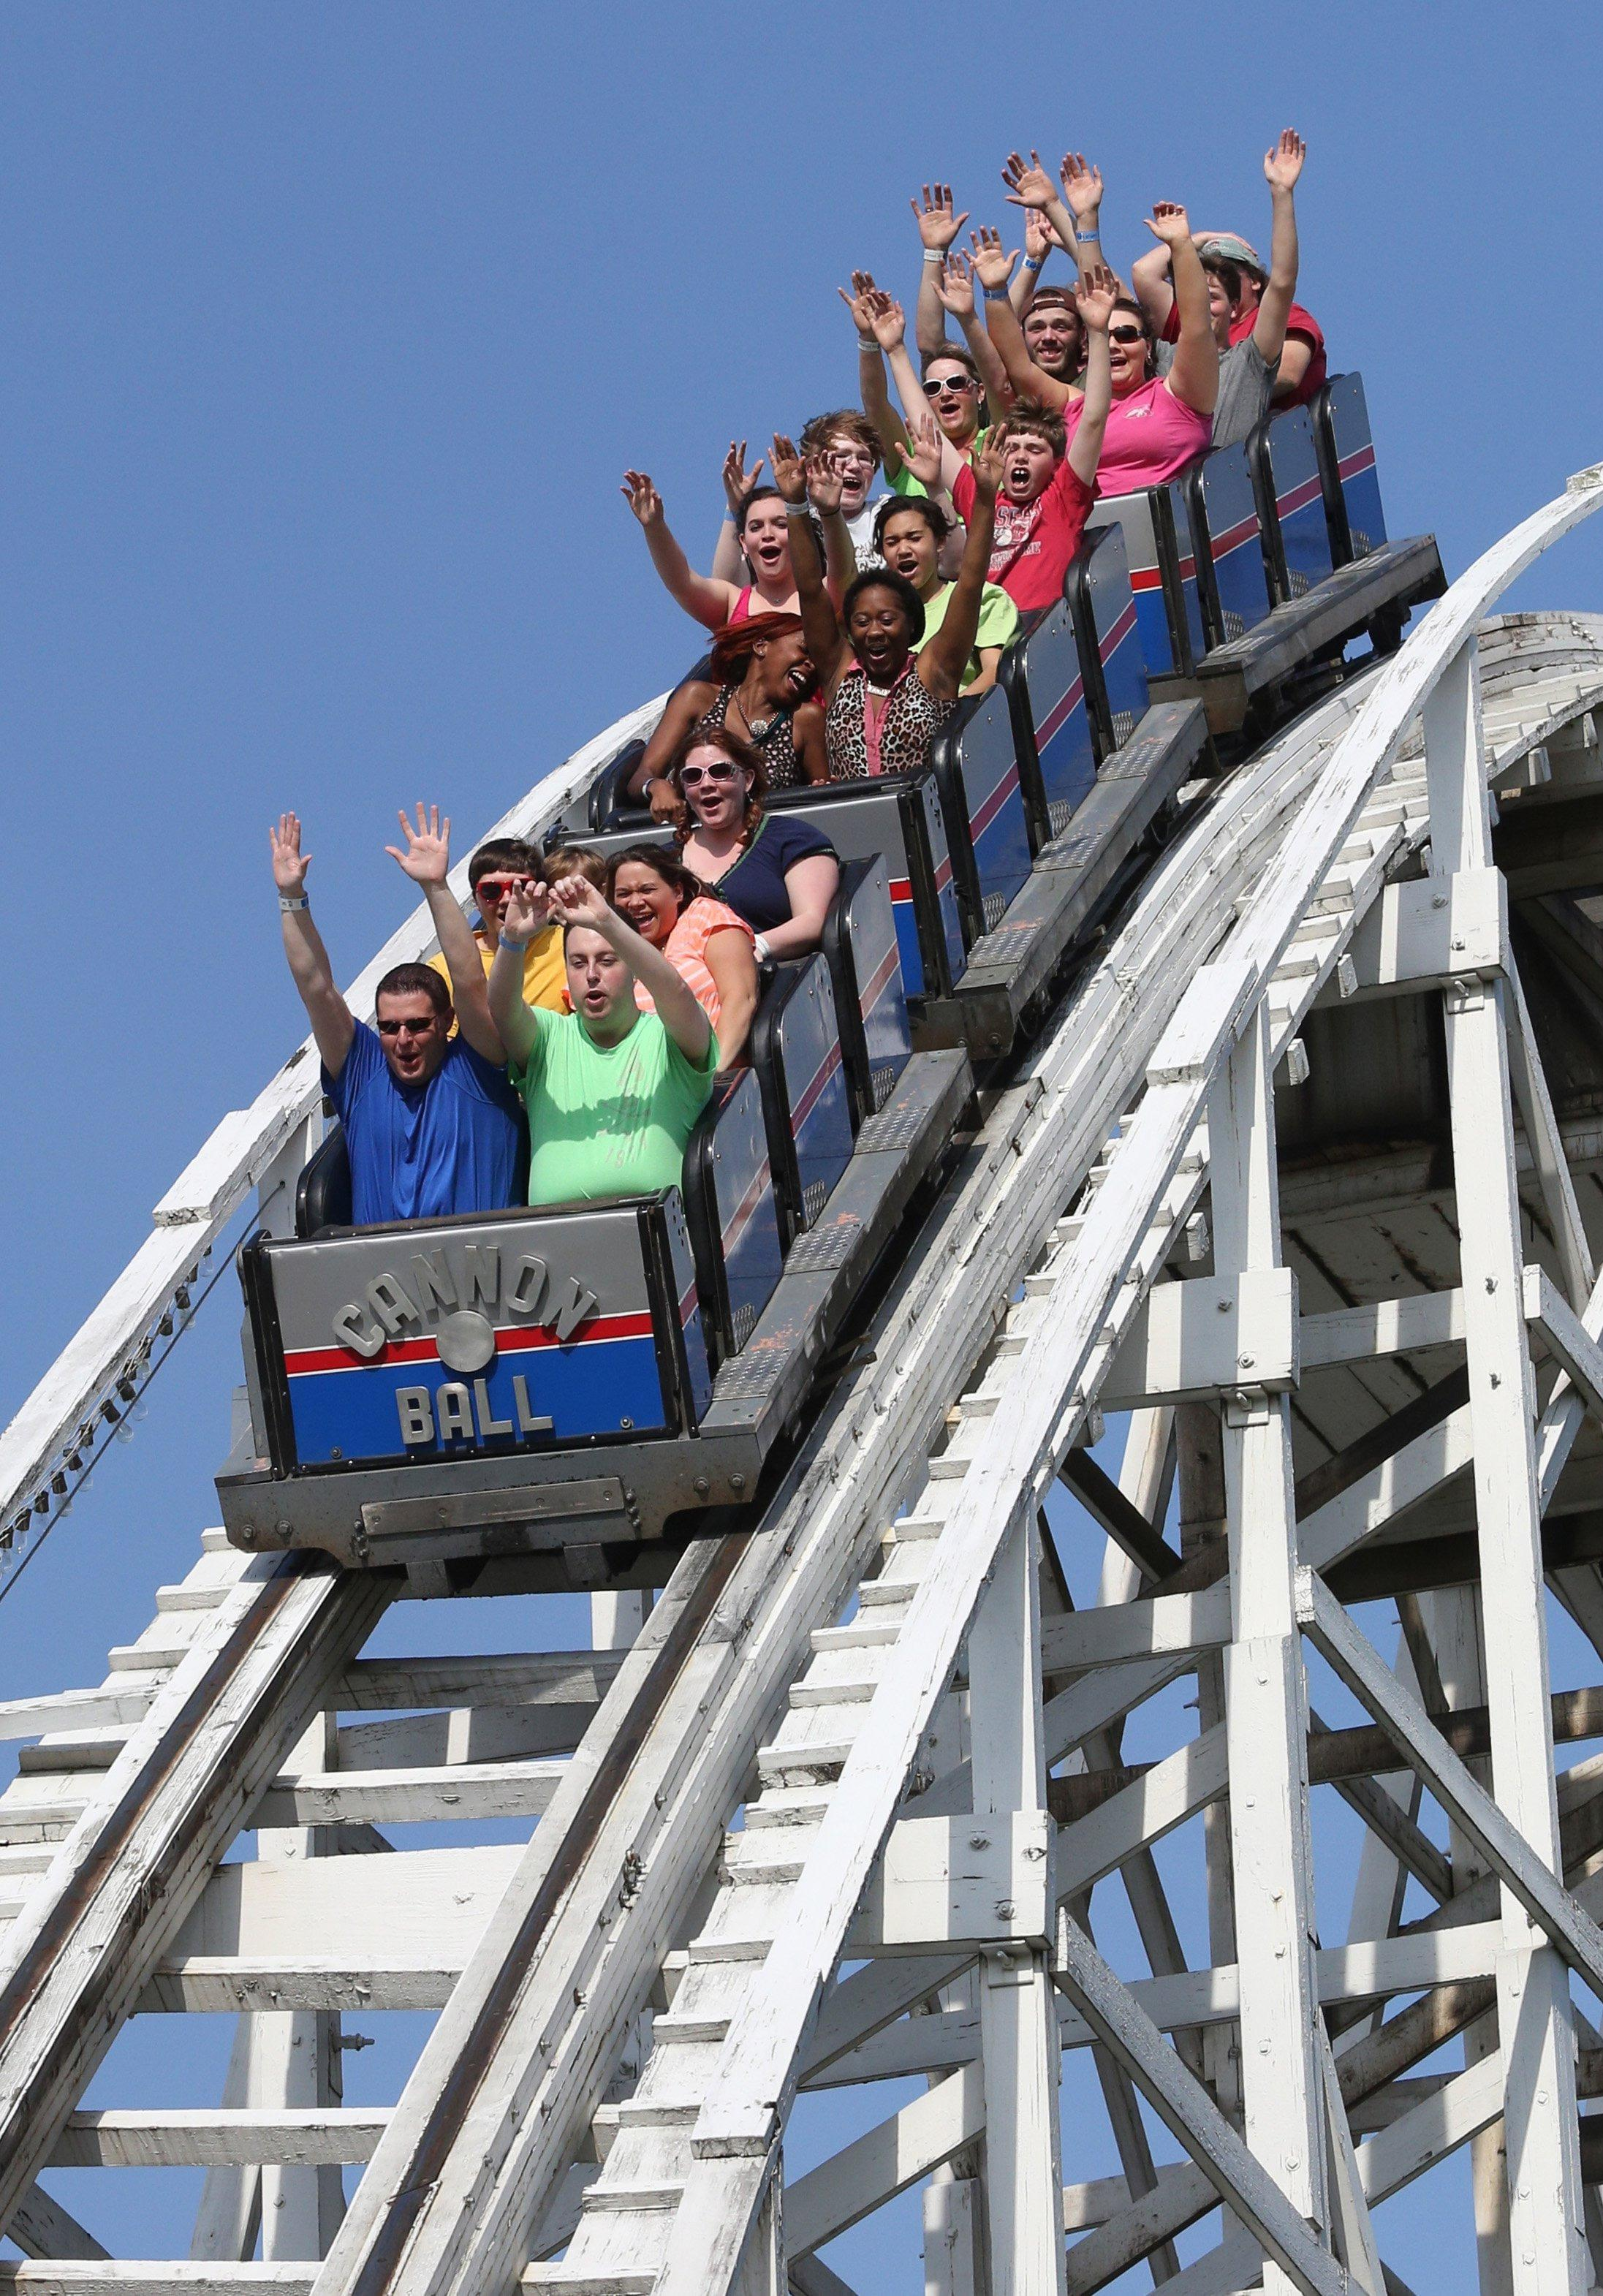 No more screaming at theme parks?